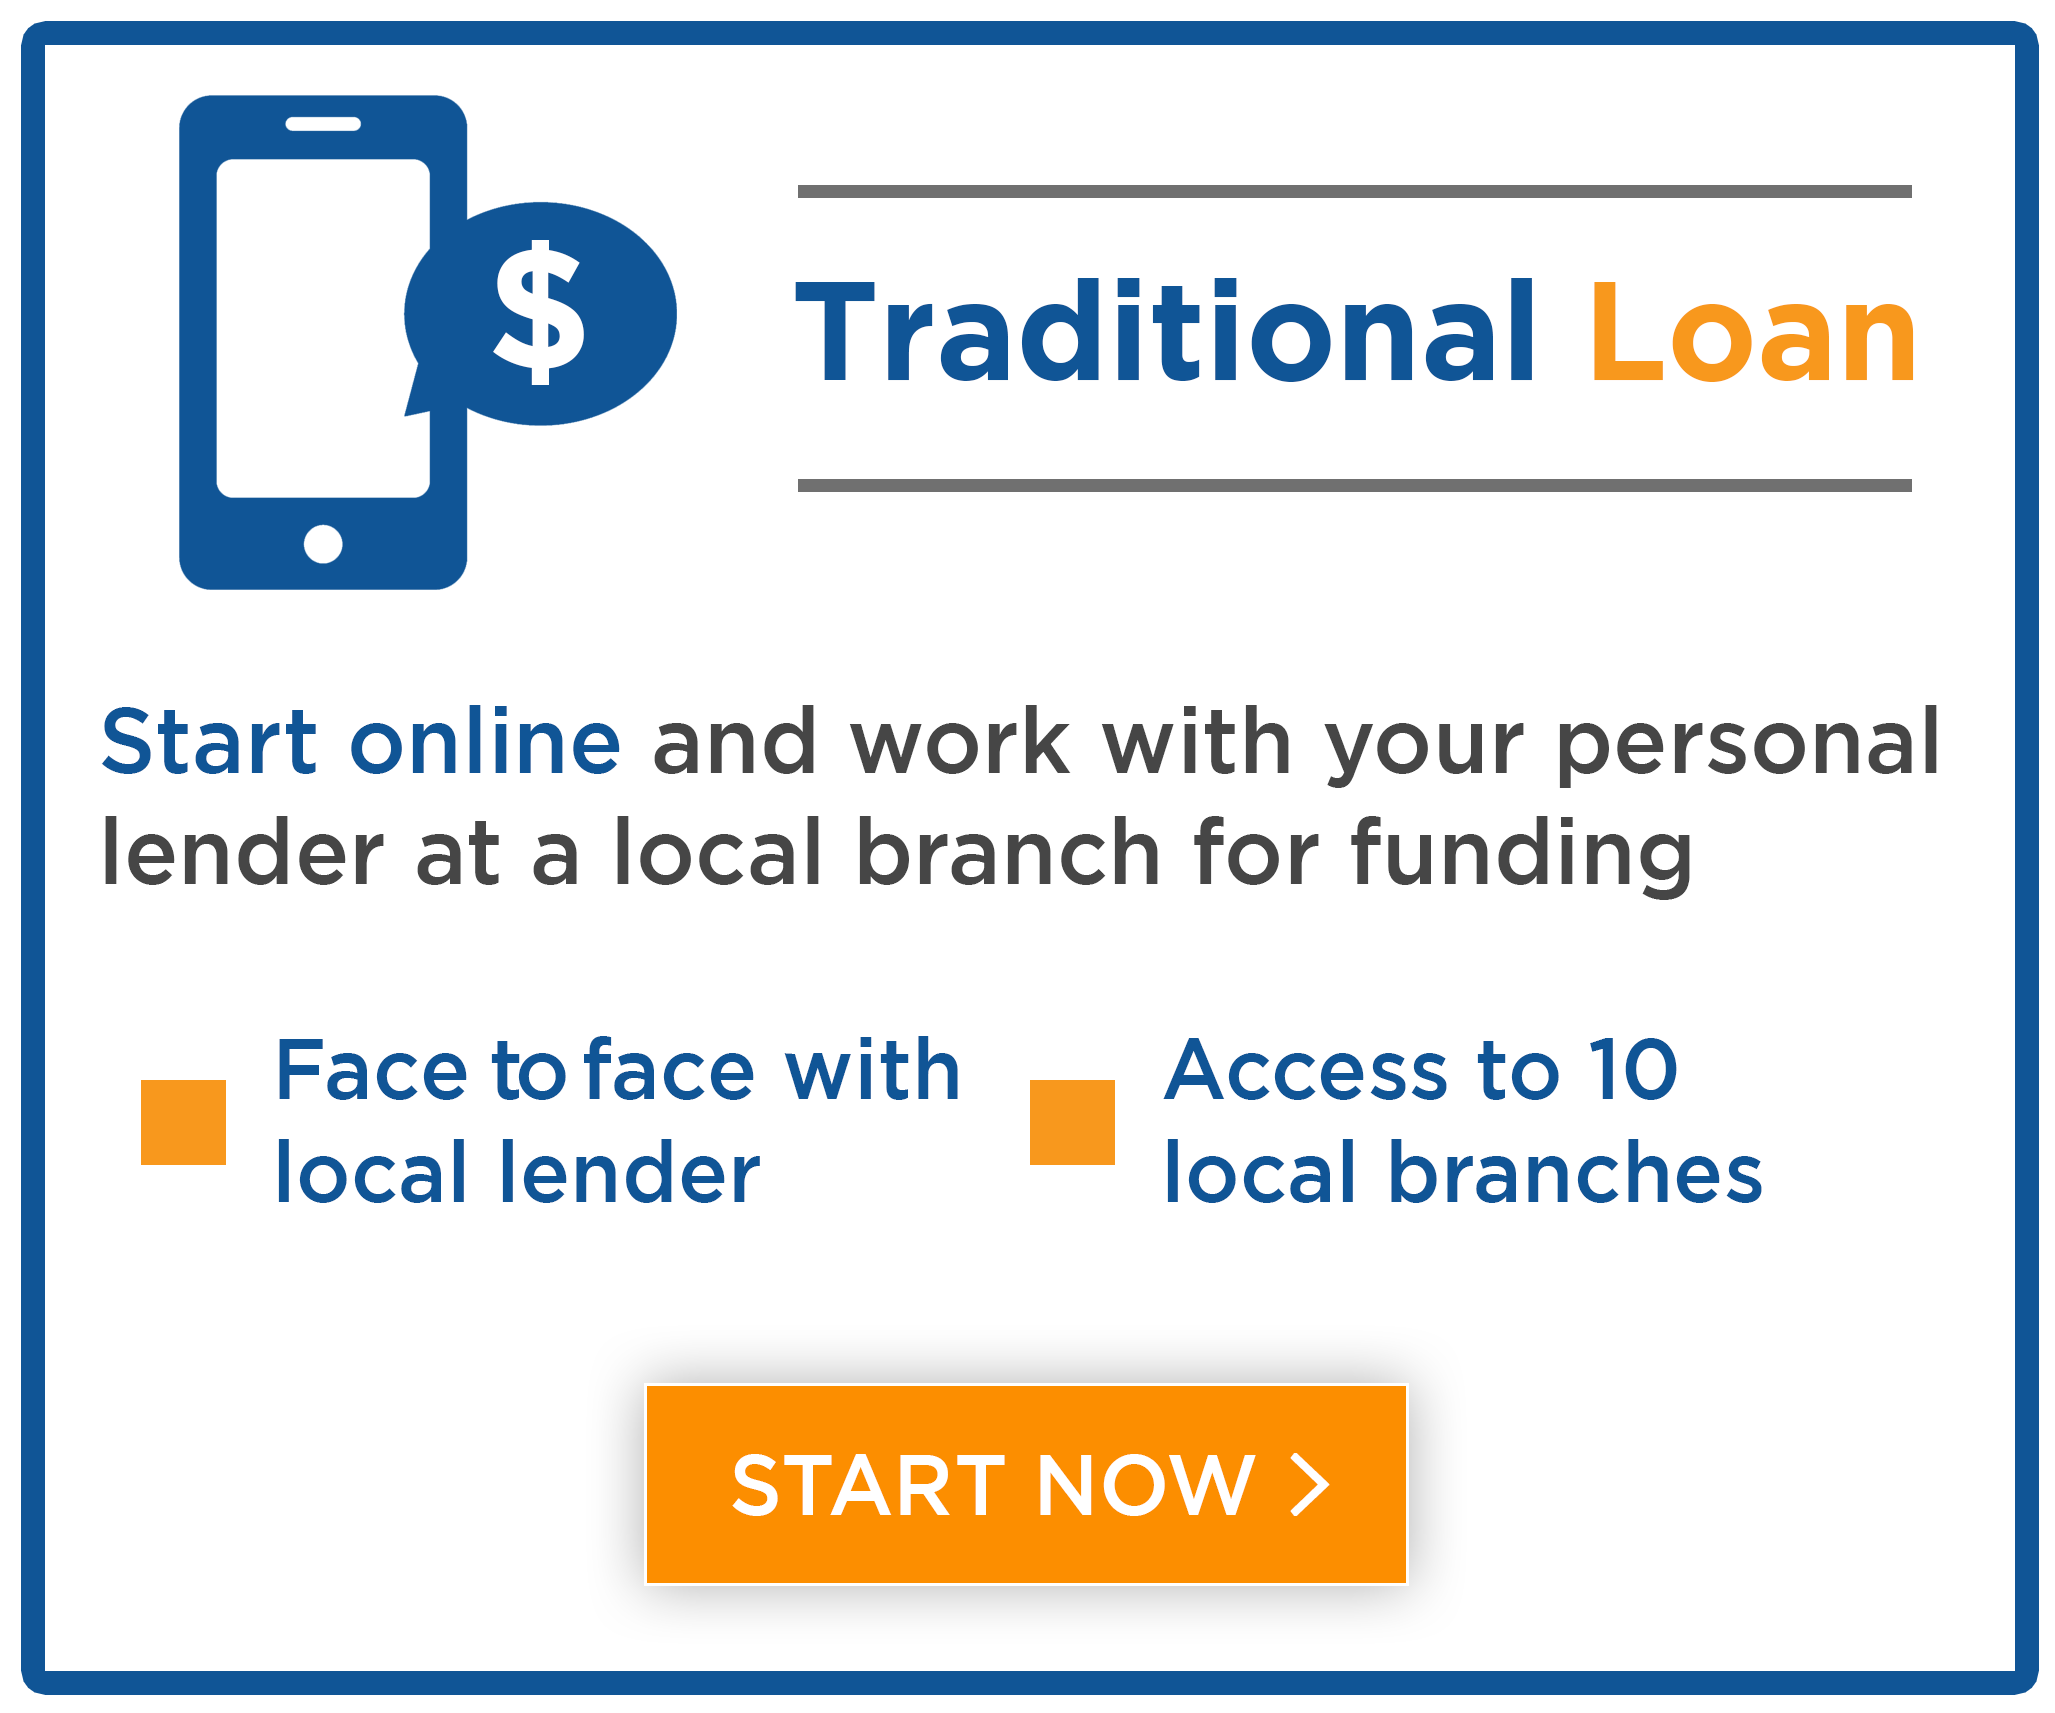 Start your loan process online and finish in branch with your personal lender at Central Sunbelt FCU